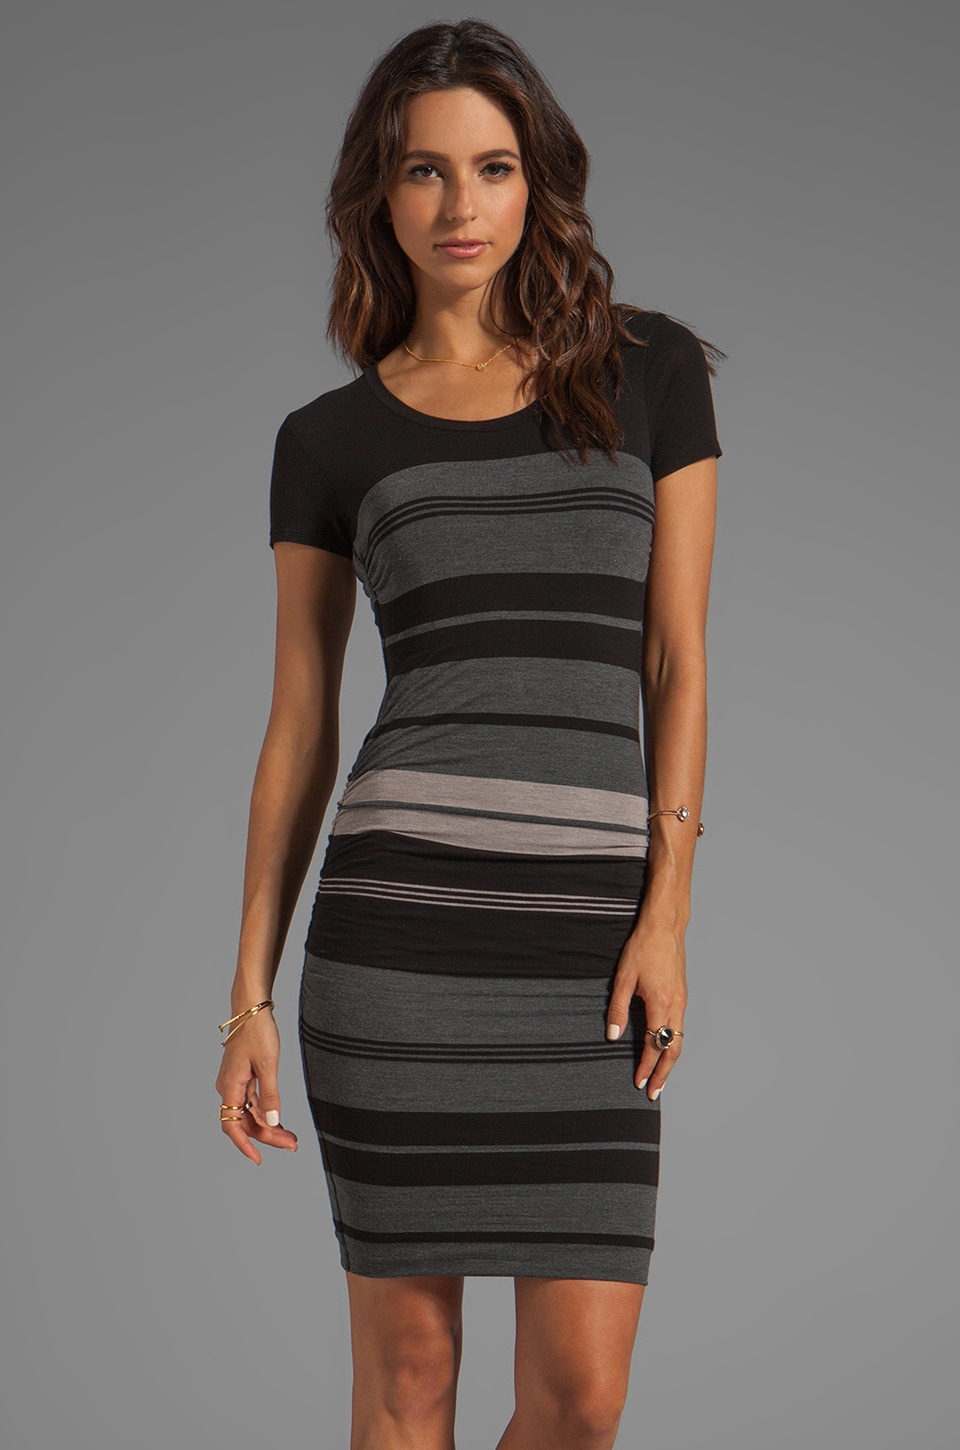 James Perse Multi Layer Stripe Dress in Charcoal/Black